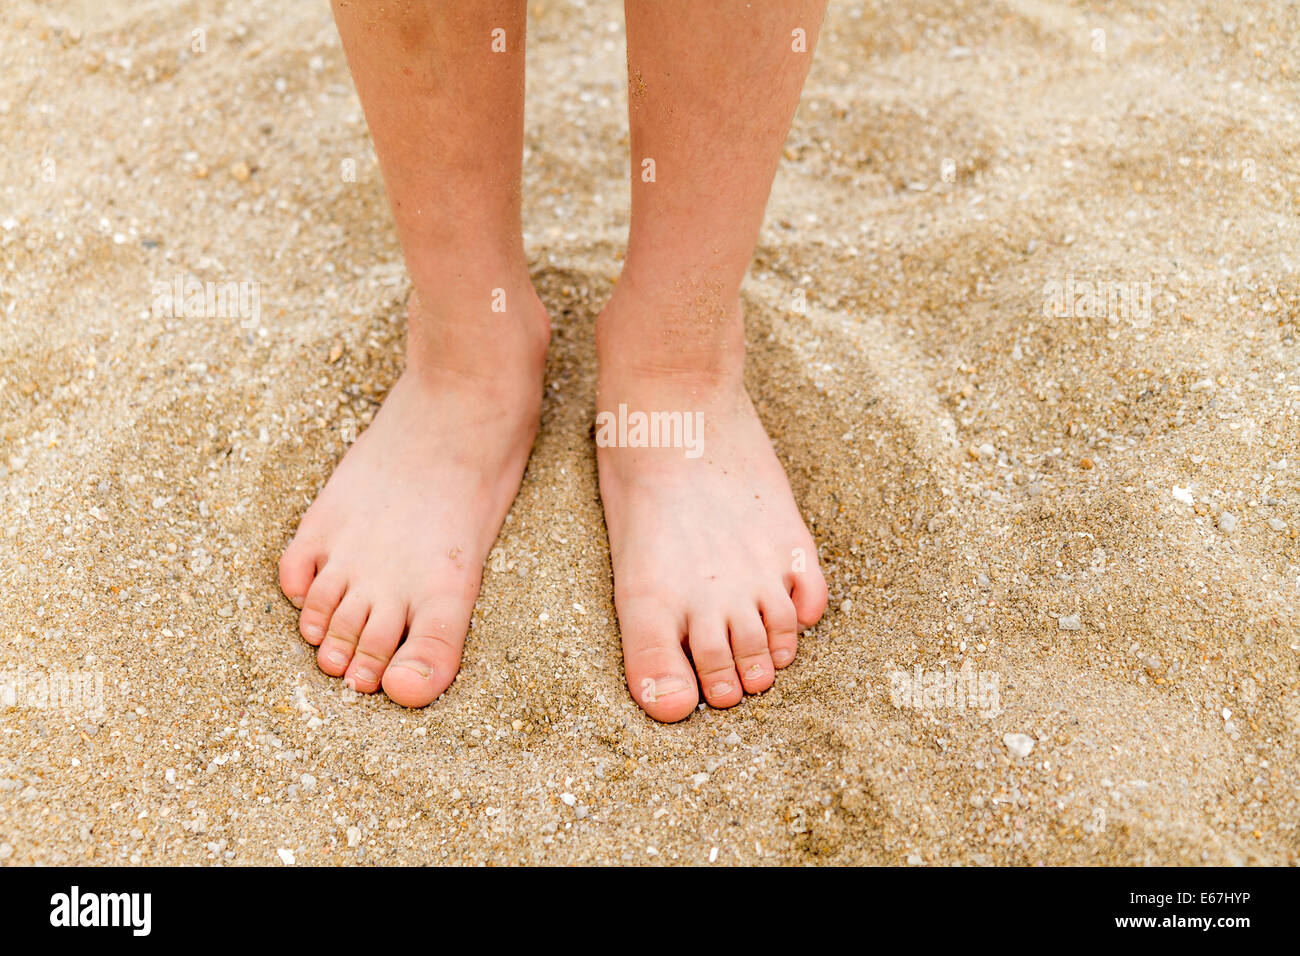 Bare feet of a young child in the sand - Stock Image